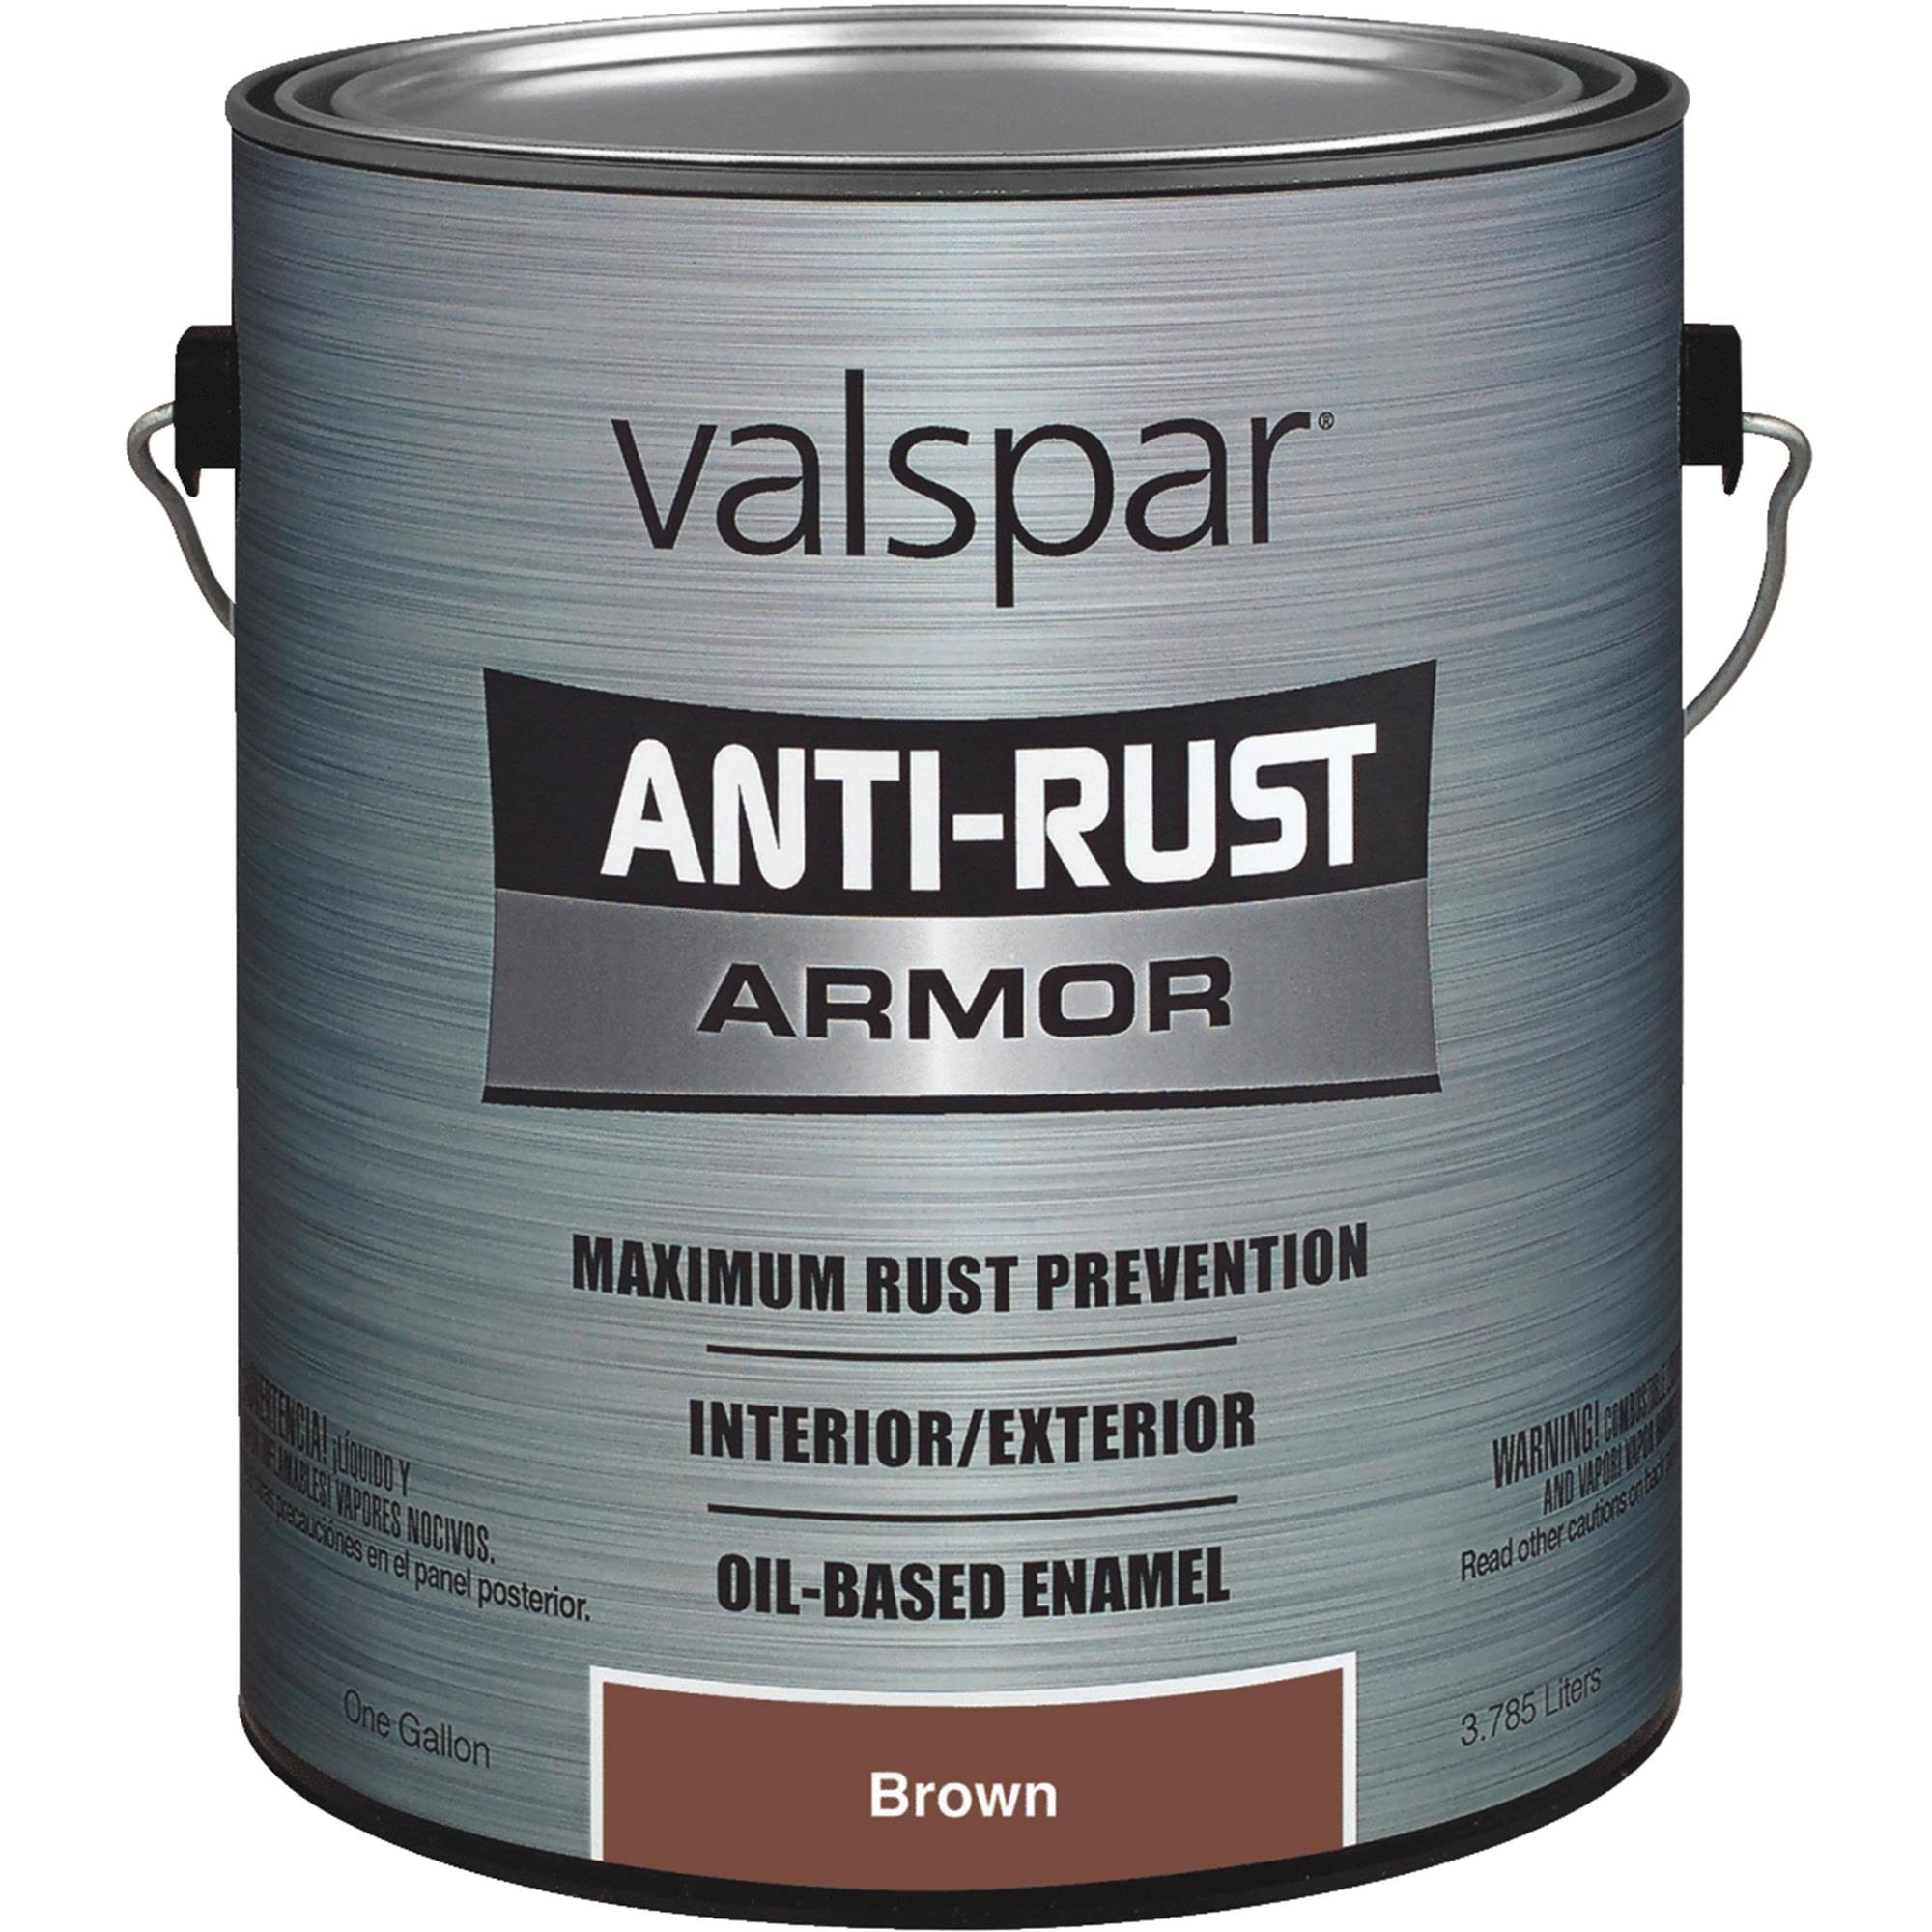 Valspar Anti-Rust Armor Enamel - Brown